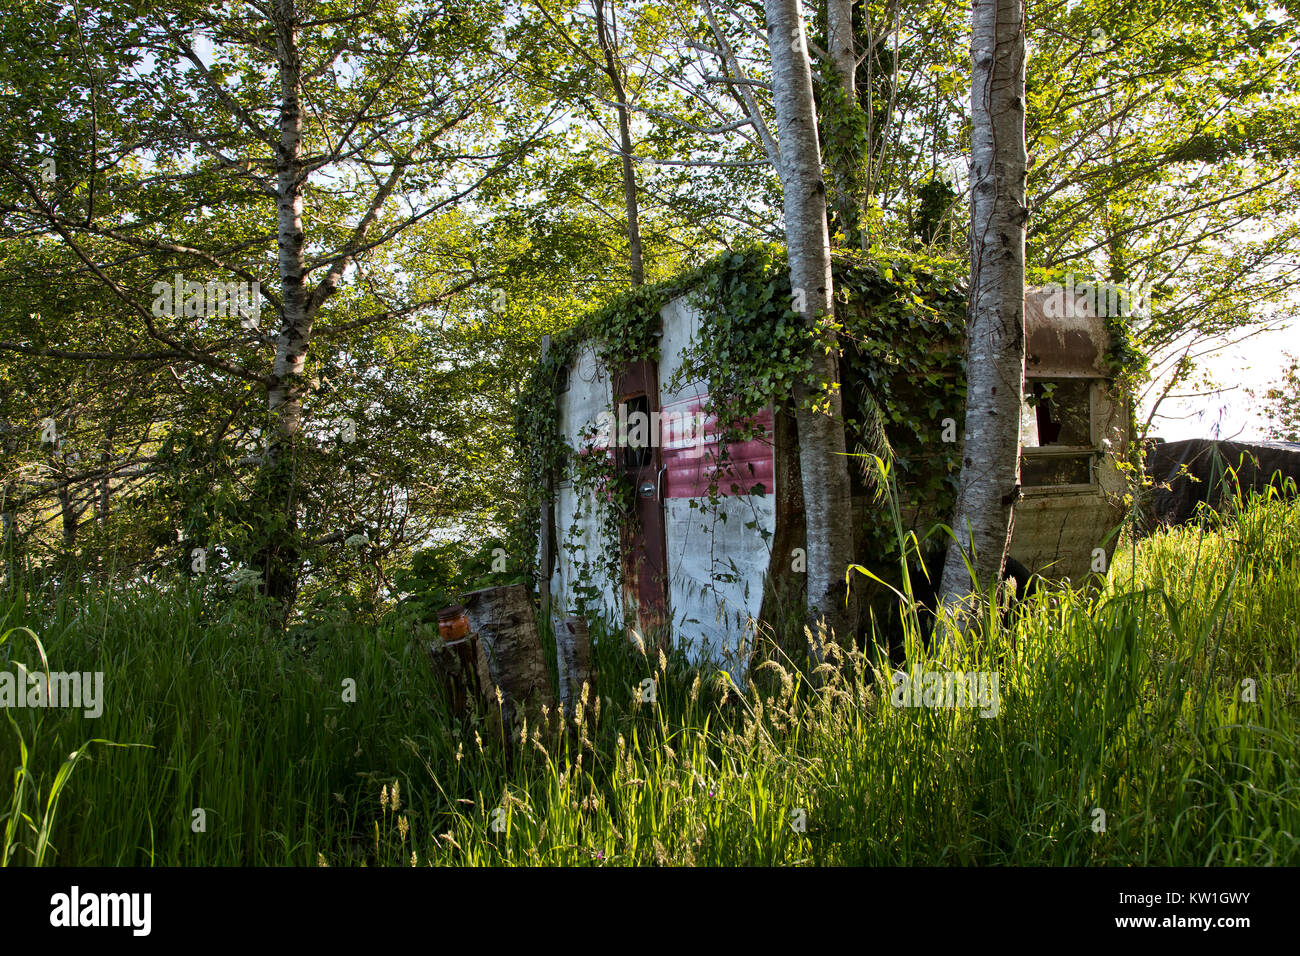 Vintage Travel Trailer  Tour-A-Home, resting under a grove of Alder trees, shows many years of use, dating back - Stock Image